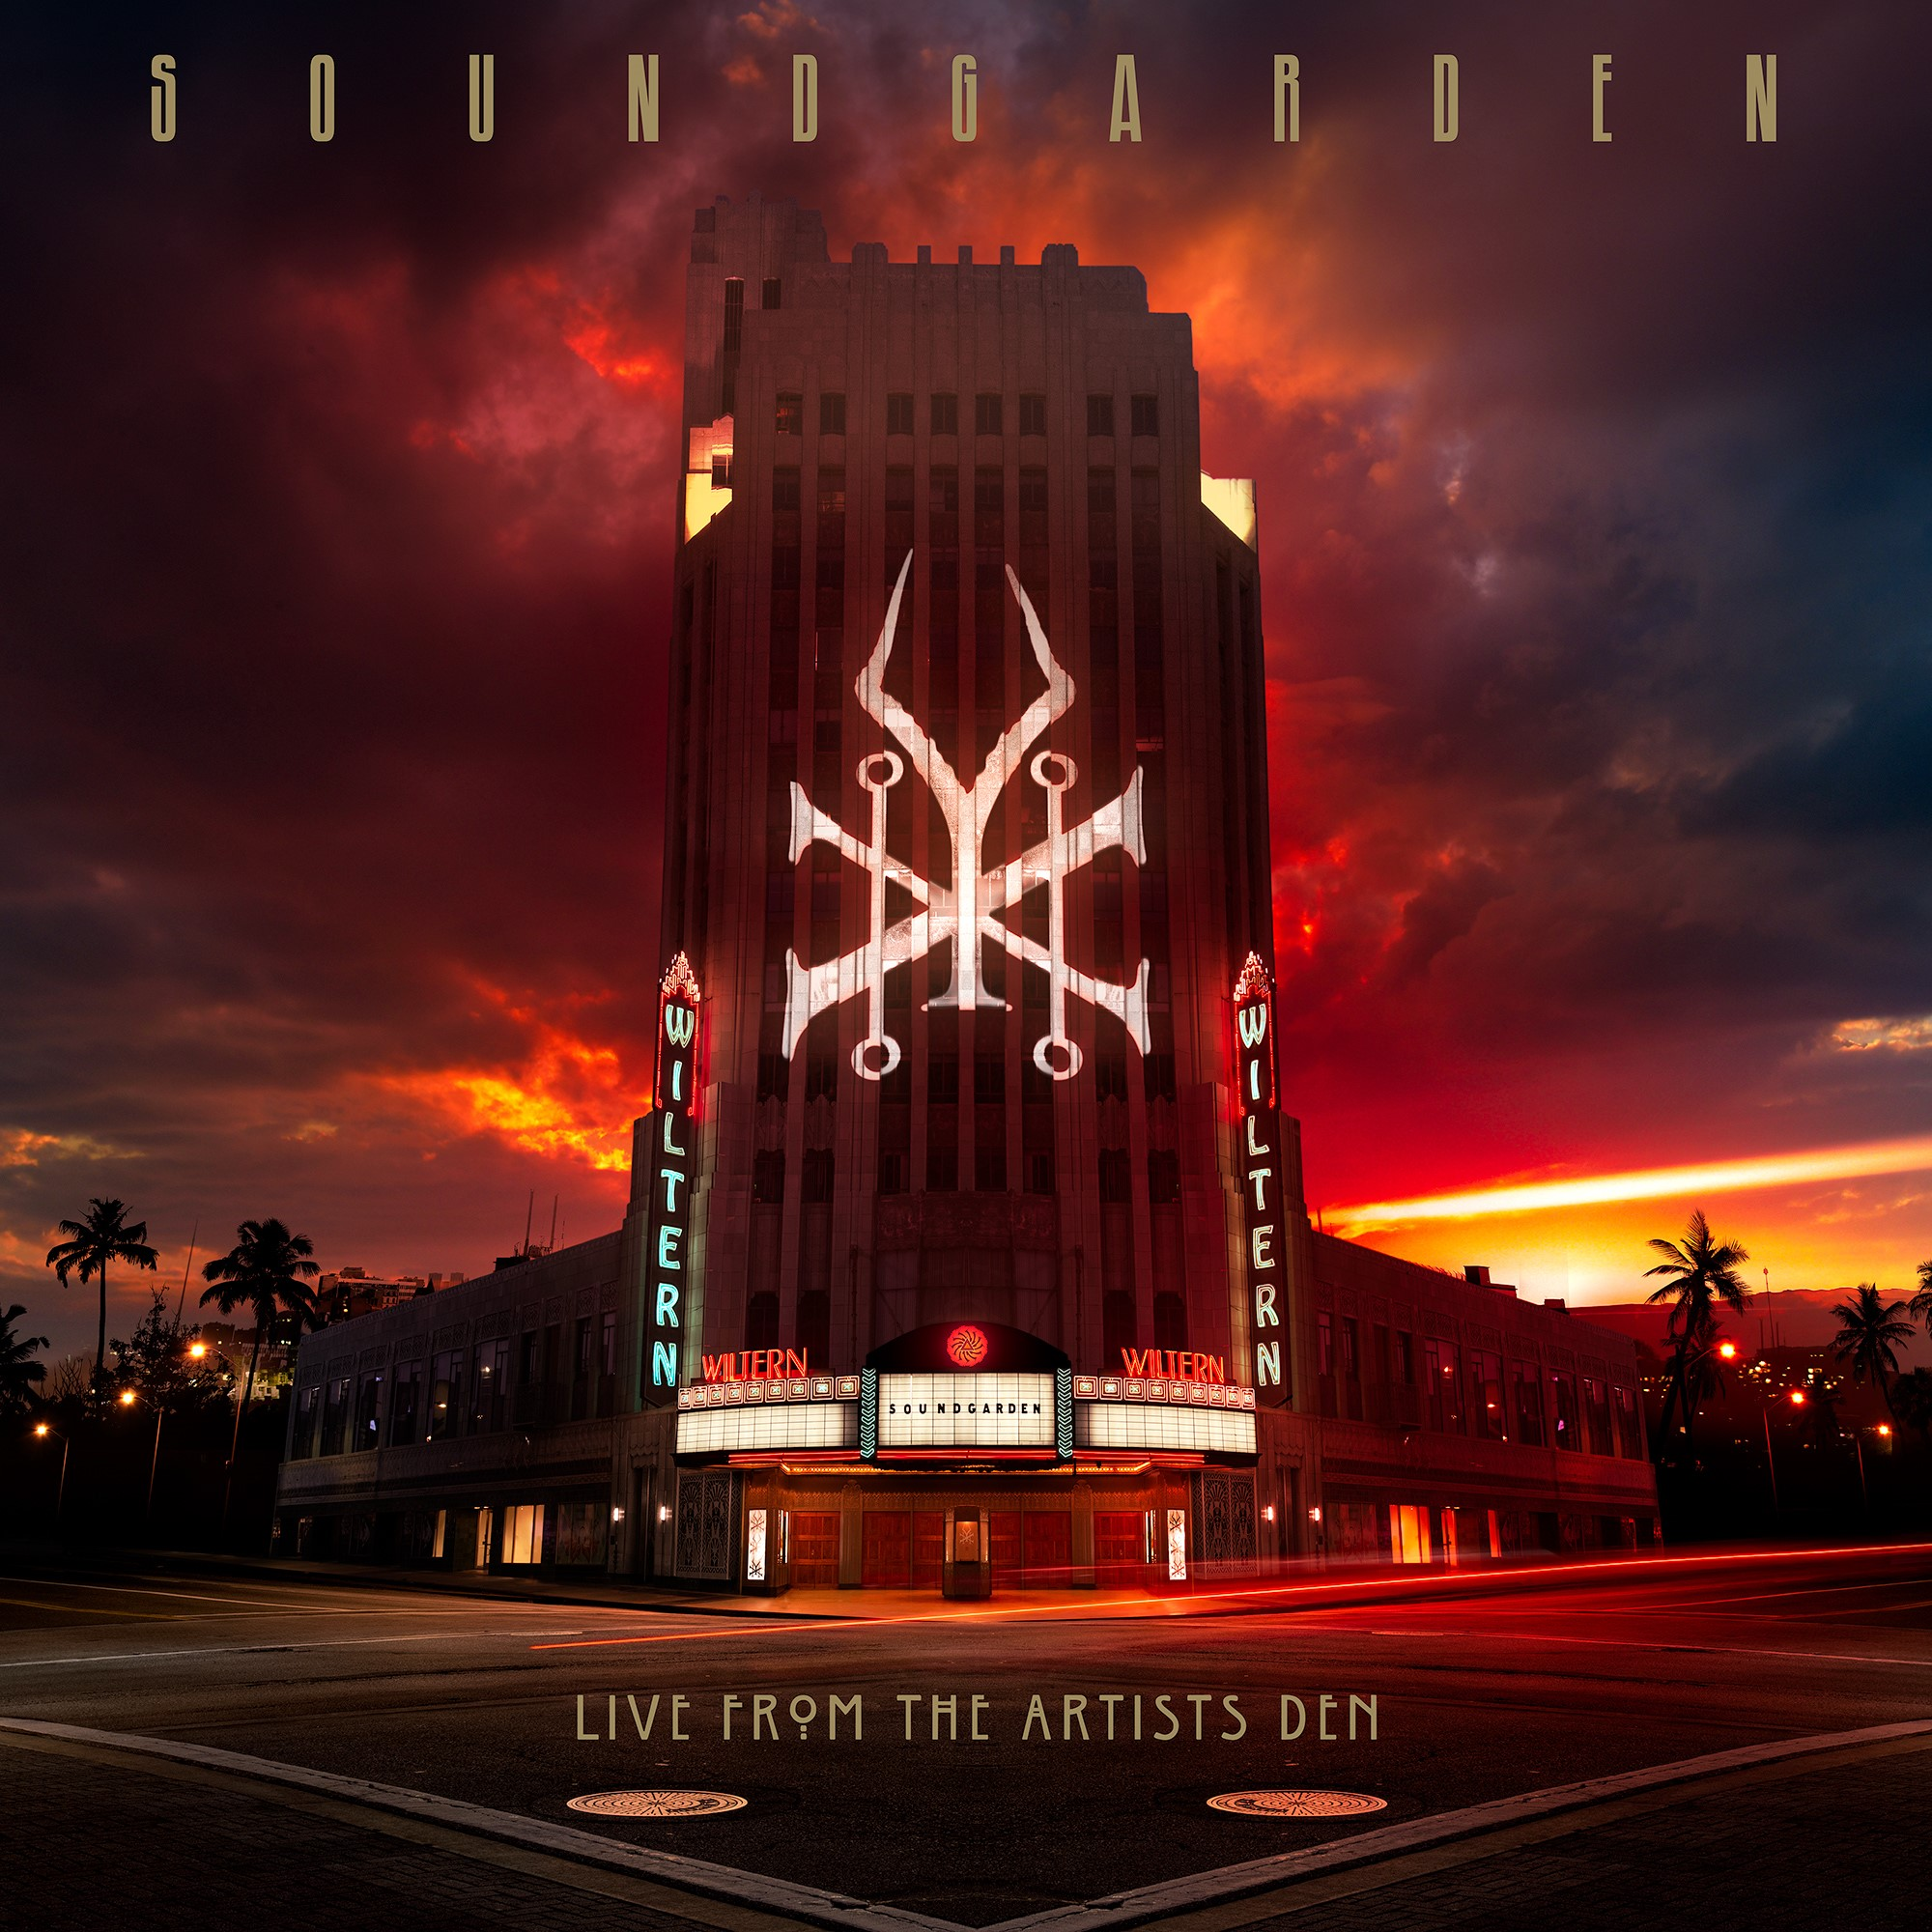 87f2201c Pre-Order Soundgarden Live From The Artists Den!